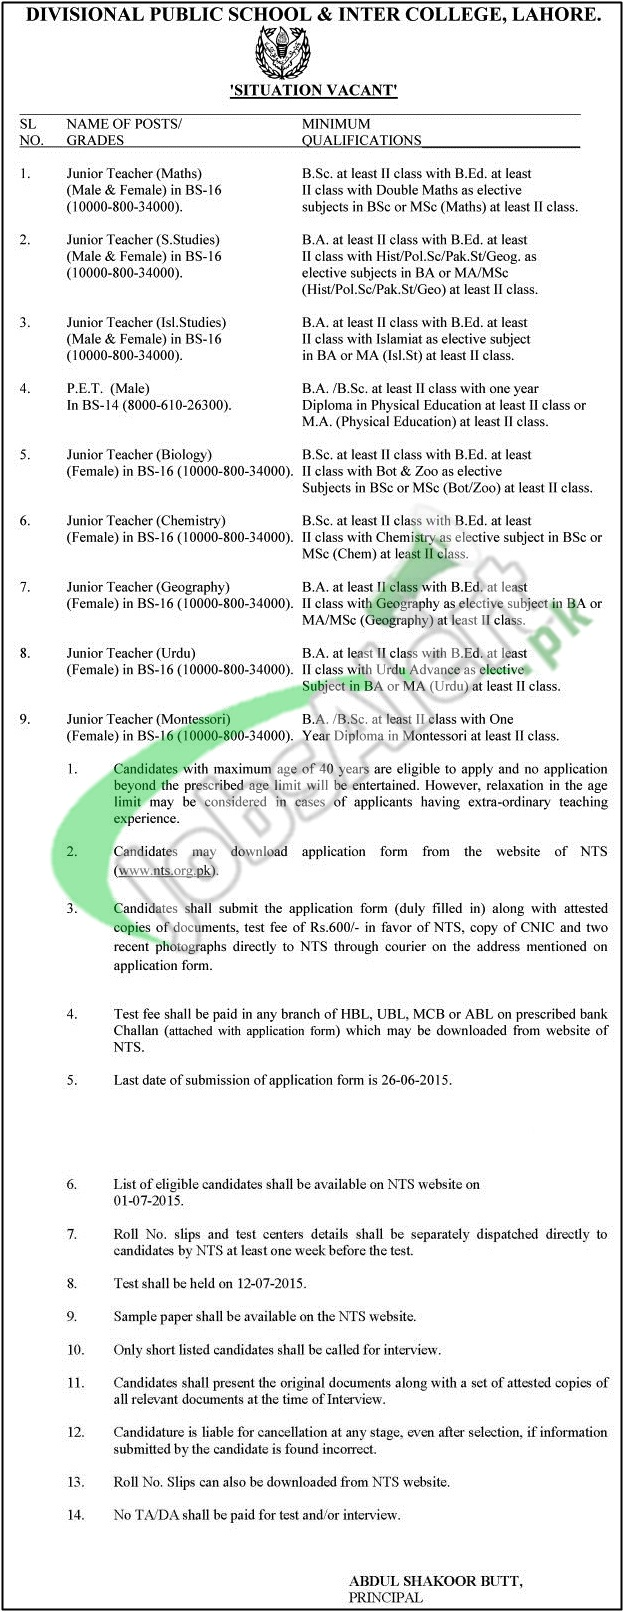 Nts Jobs In Dps Lahore 2015 Application Form Sample Papers Jobs